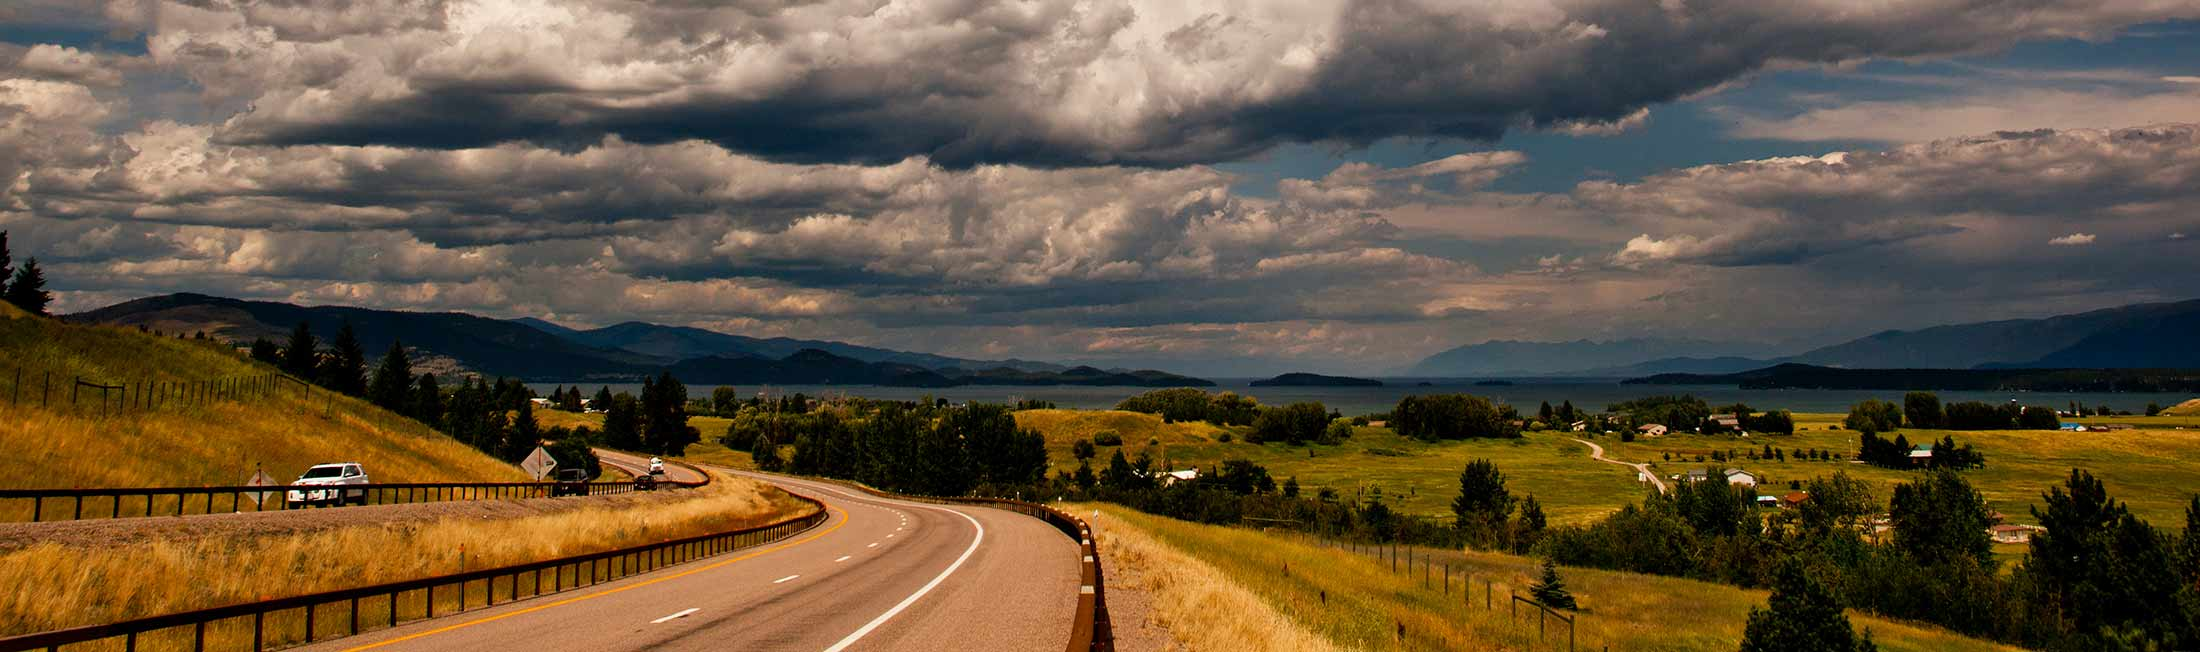 Along Flathead Lake, Polson is one of the areas you will pass through motorcycling from Missoula to Bigfork.